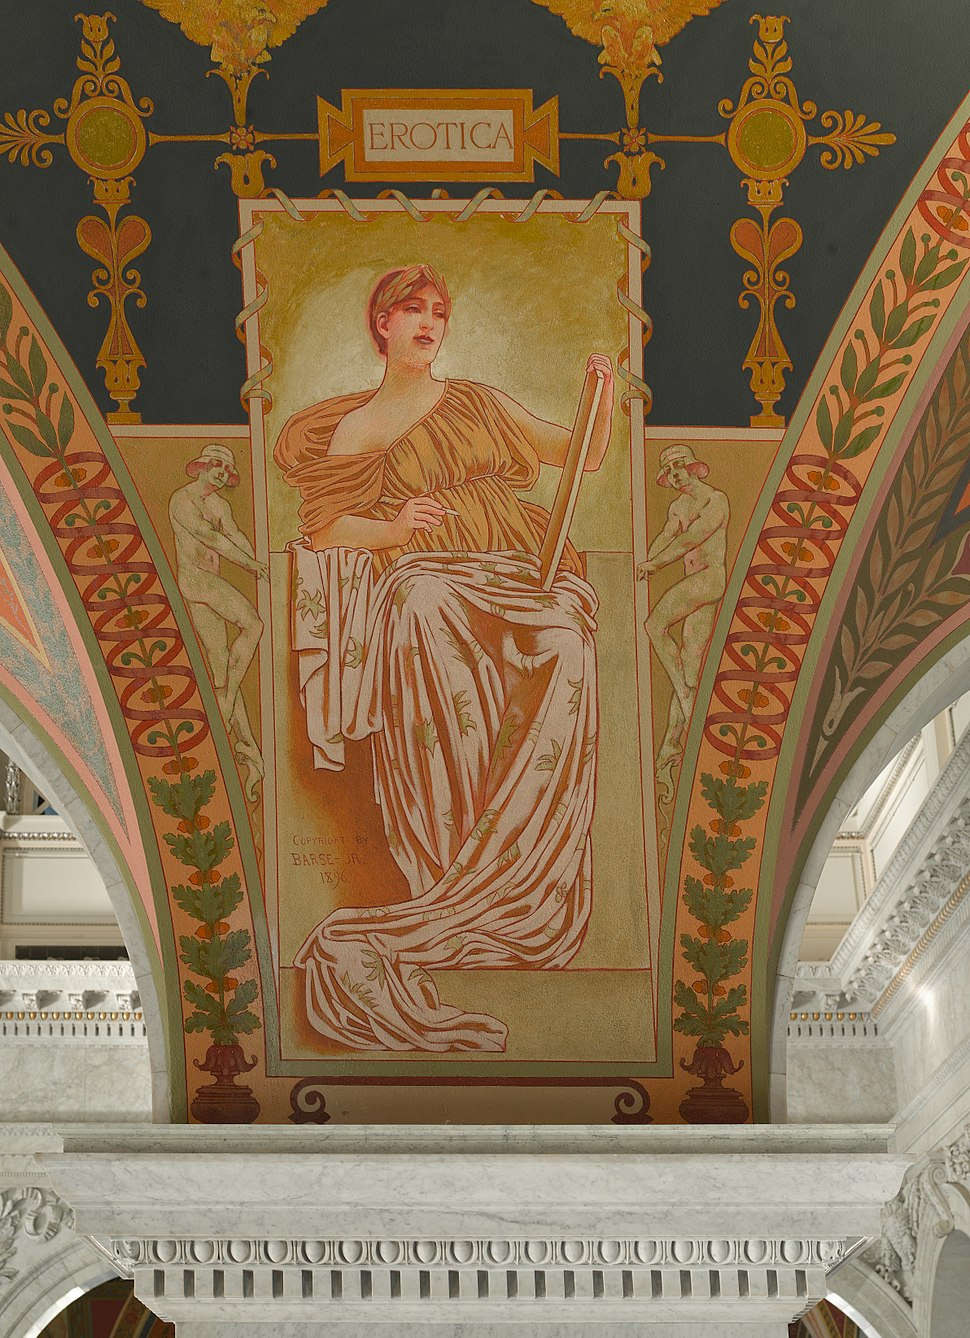 mural painting titled Erotica, by George Randolph Bars